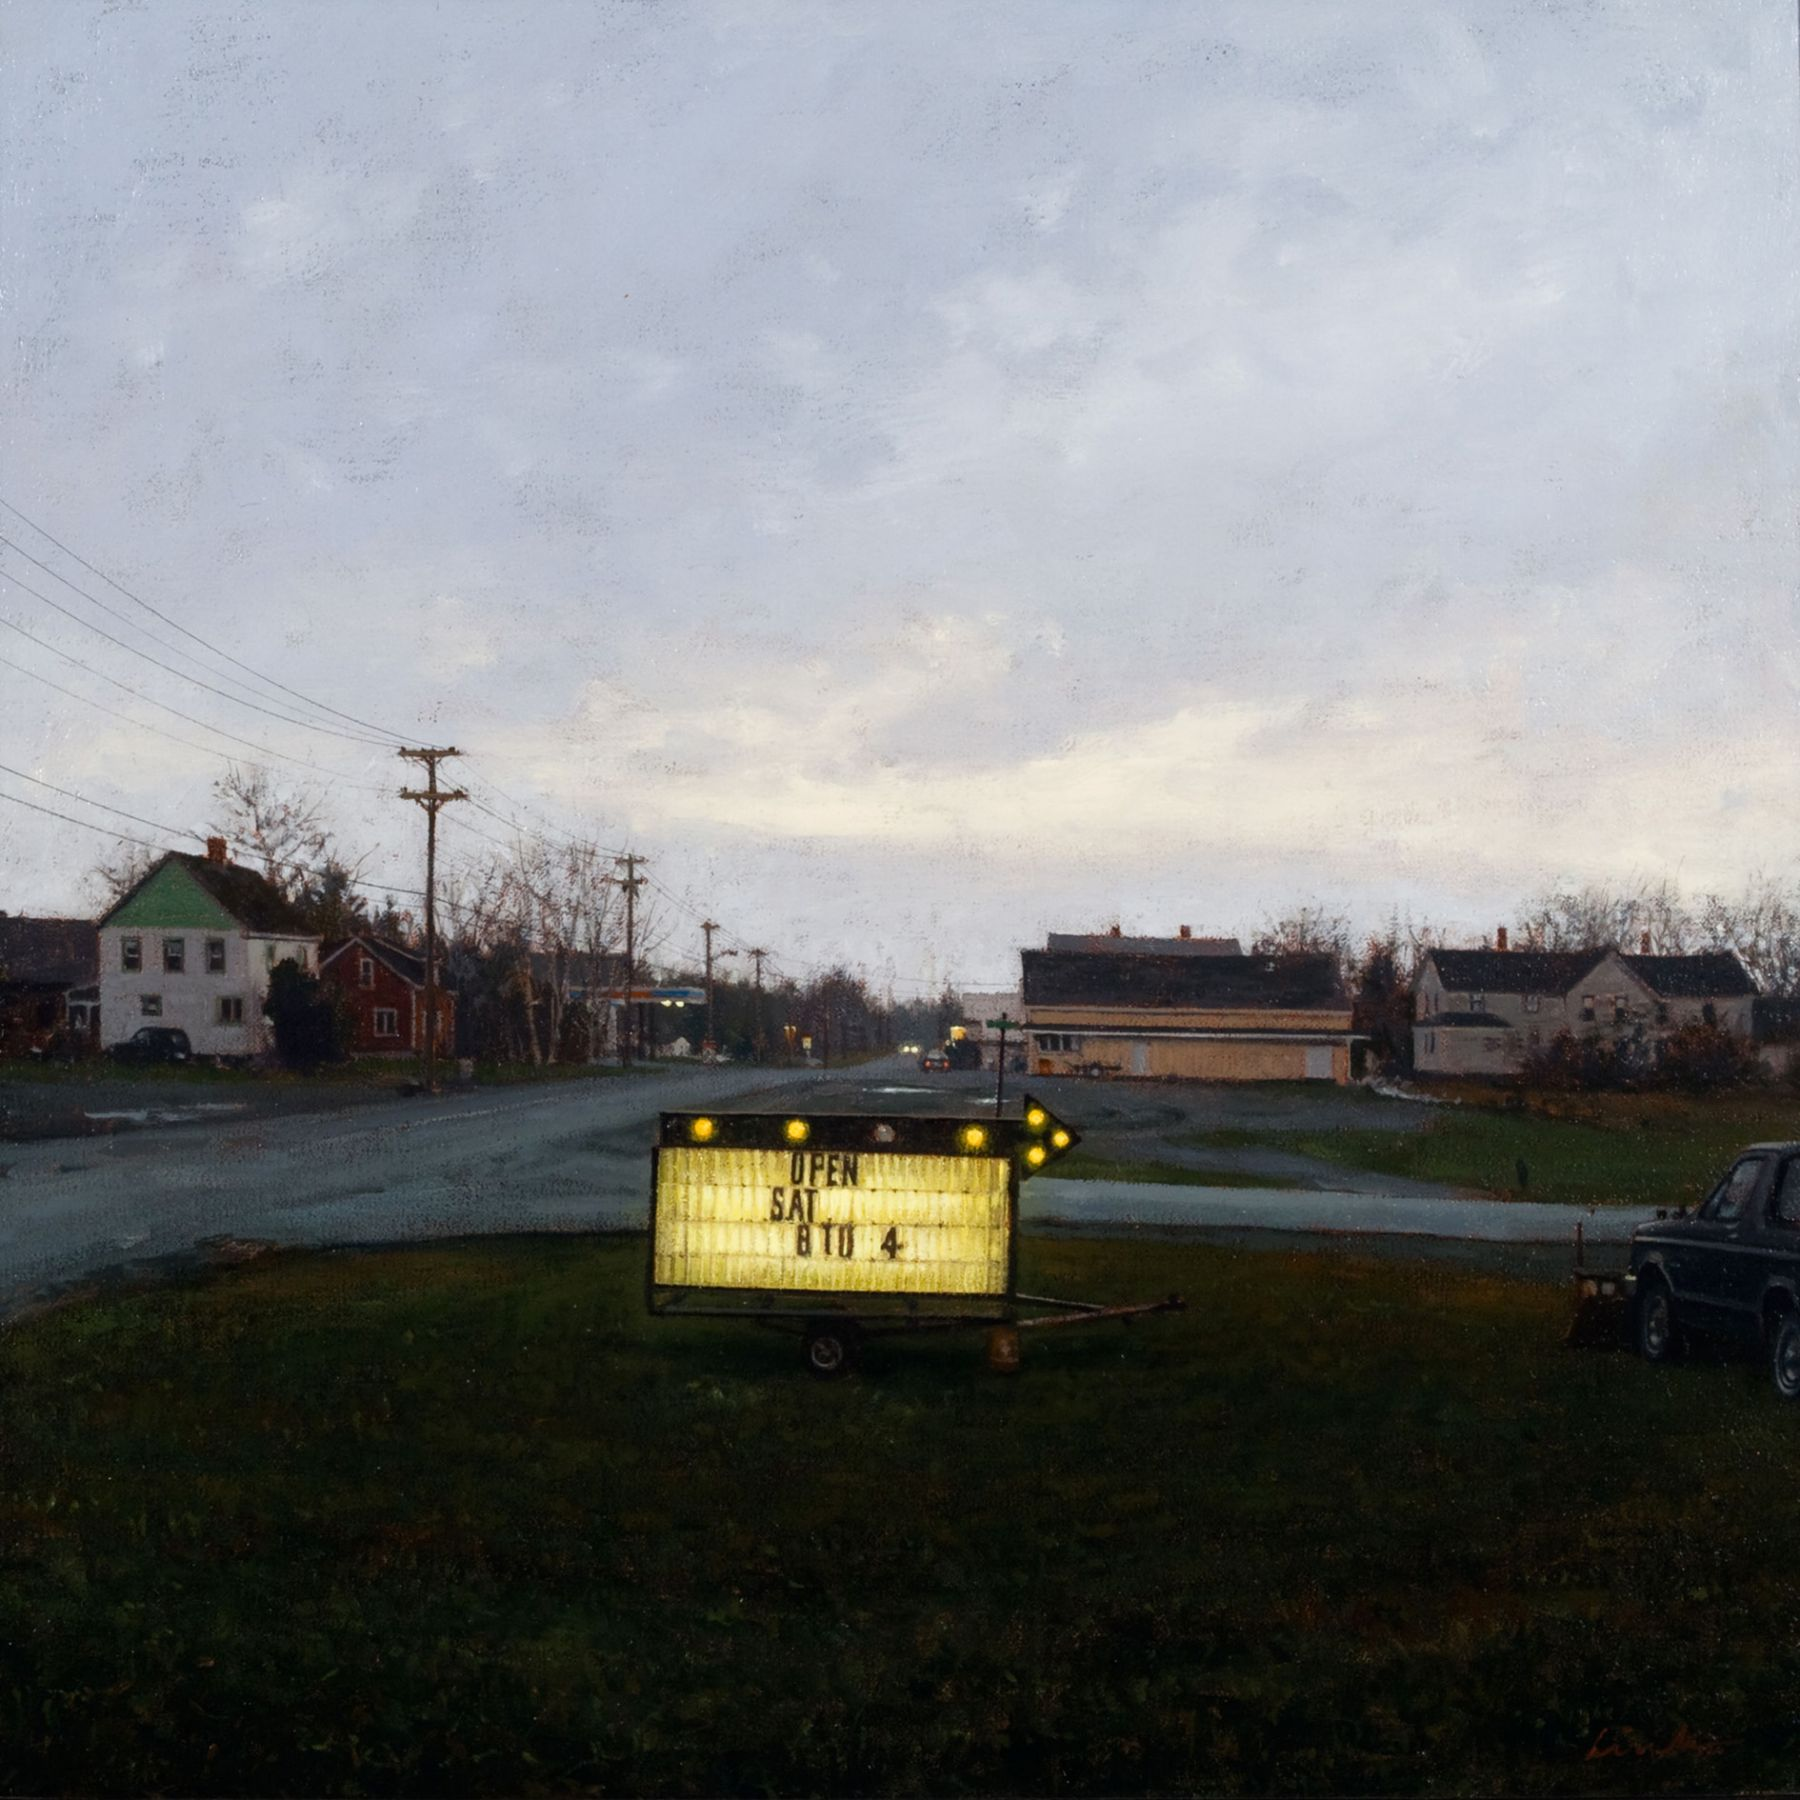 Linden Frederick, Open Saturday (SOLD), 2007, oil on panel, 12 1/4 x 12 1/4 inches